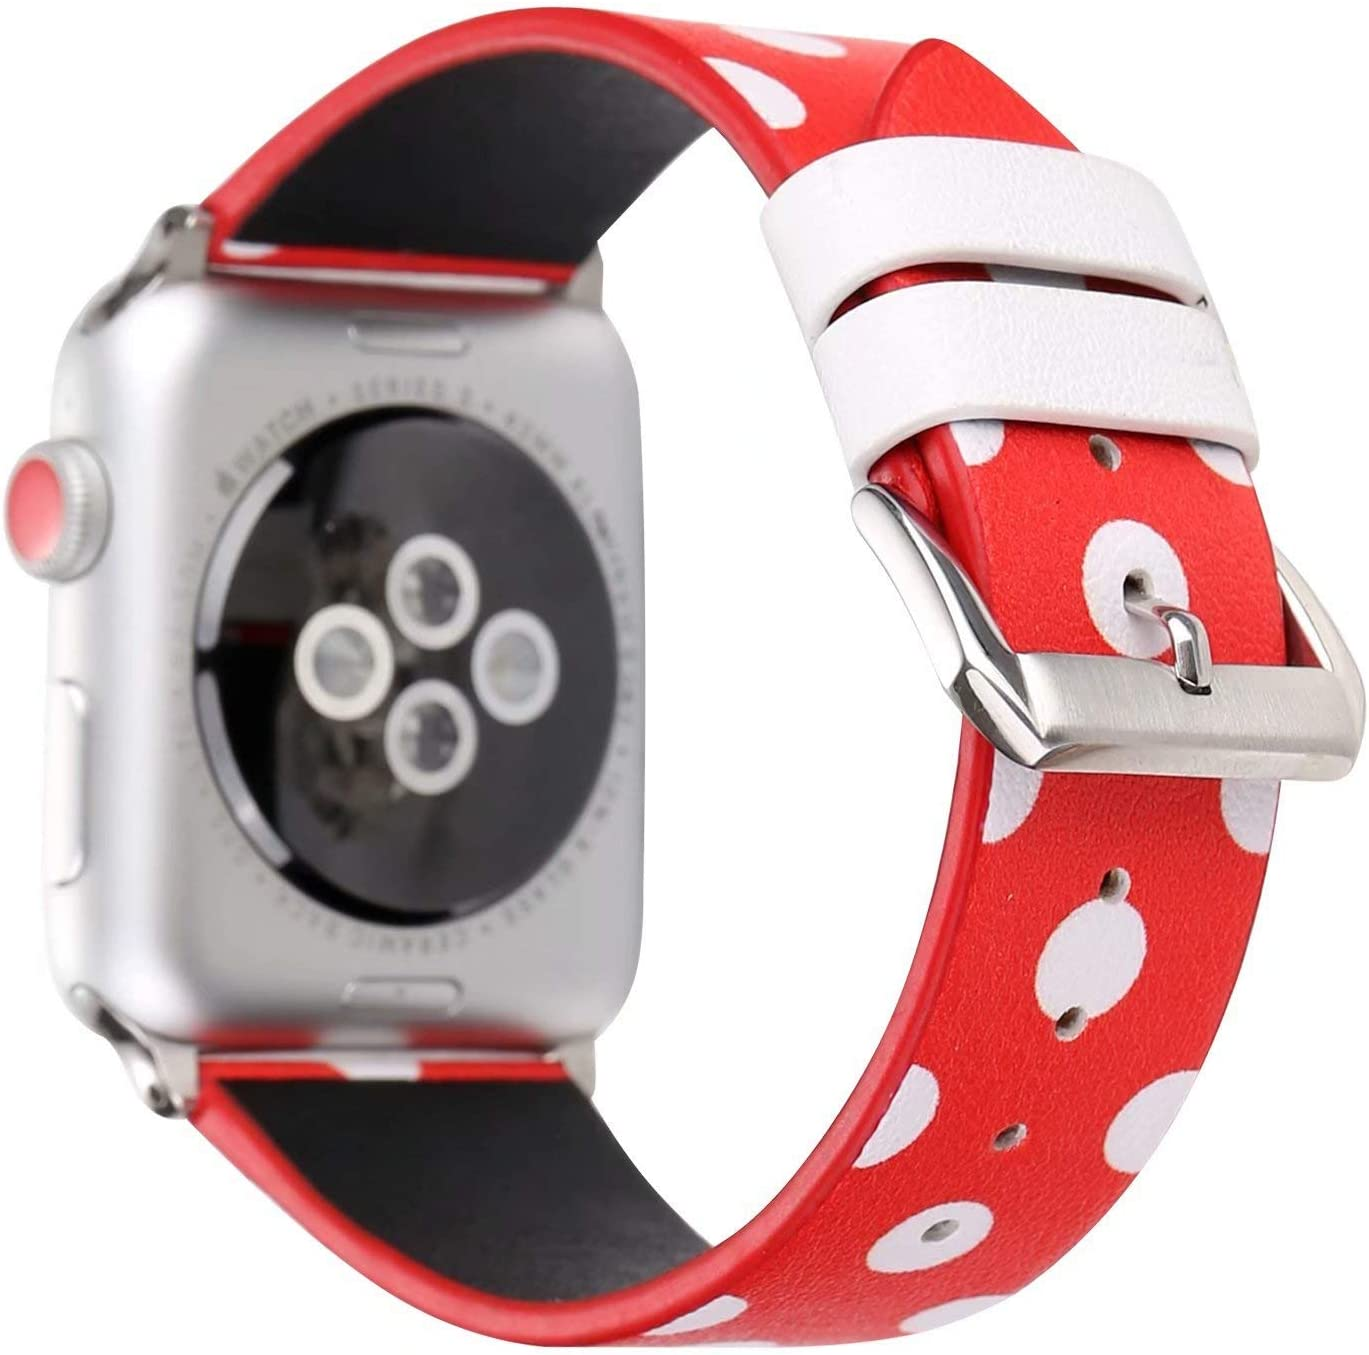 Women Girls Cute Polka Dot Leather Band Compatible with Apple Watch Series 5/4 44mm and Series 3/2/1 42mm - Red with White